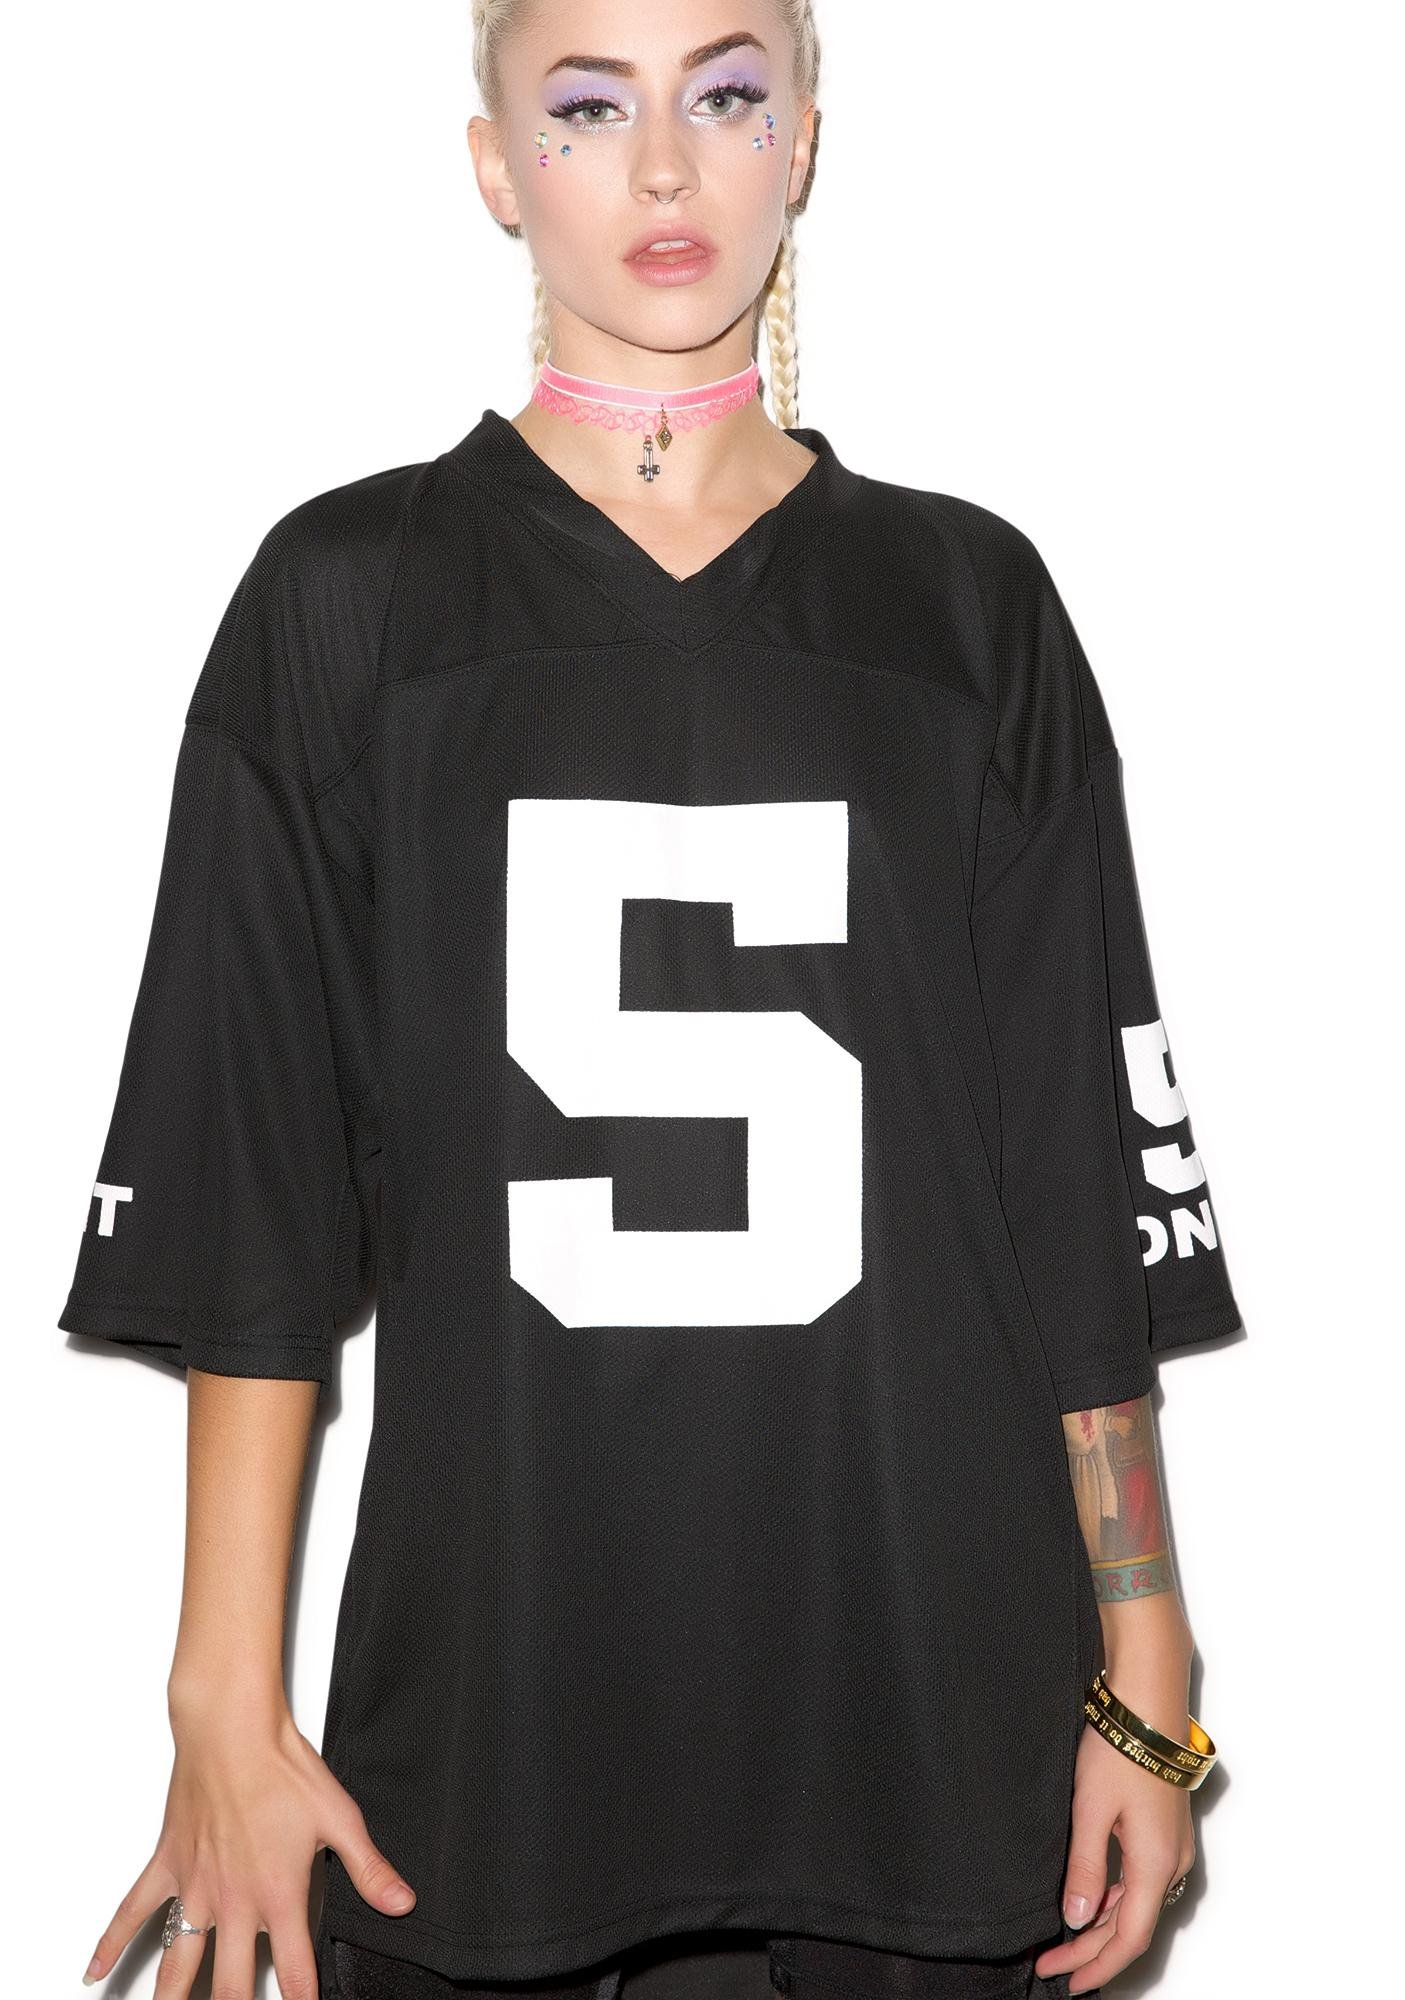 This Is A Love Song 5 On It Jersey